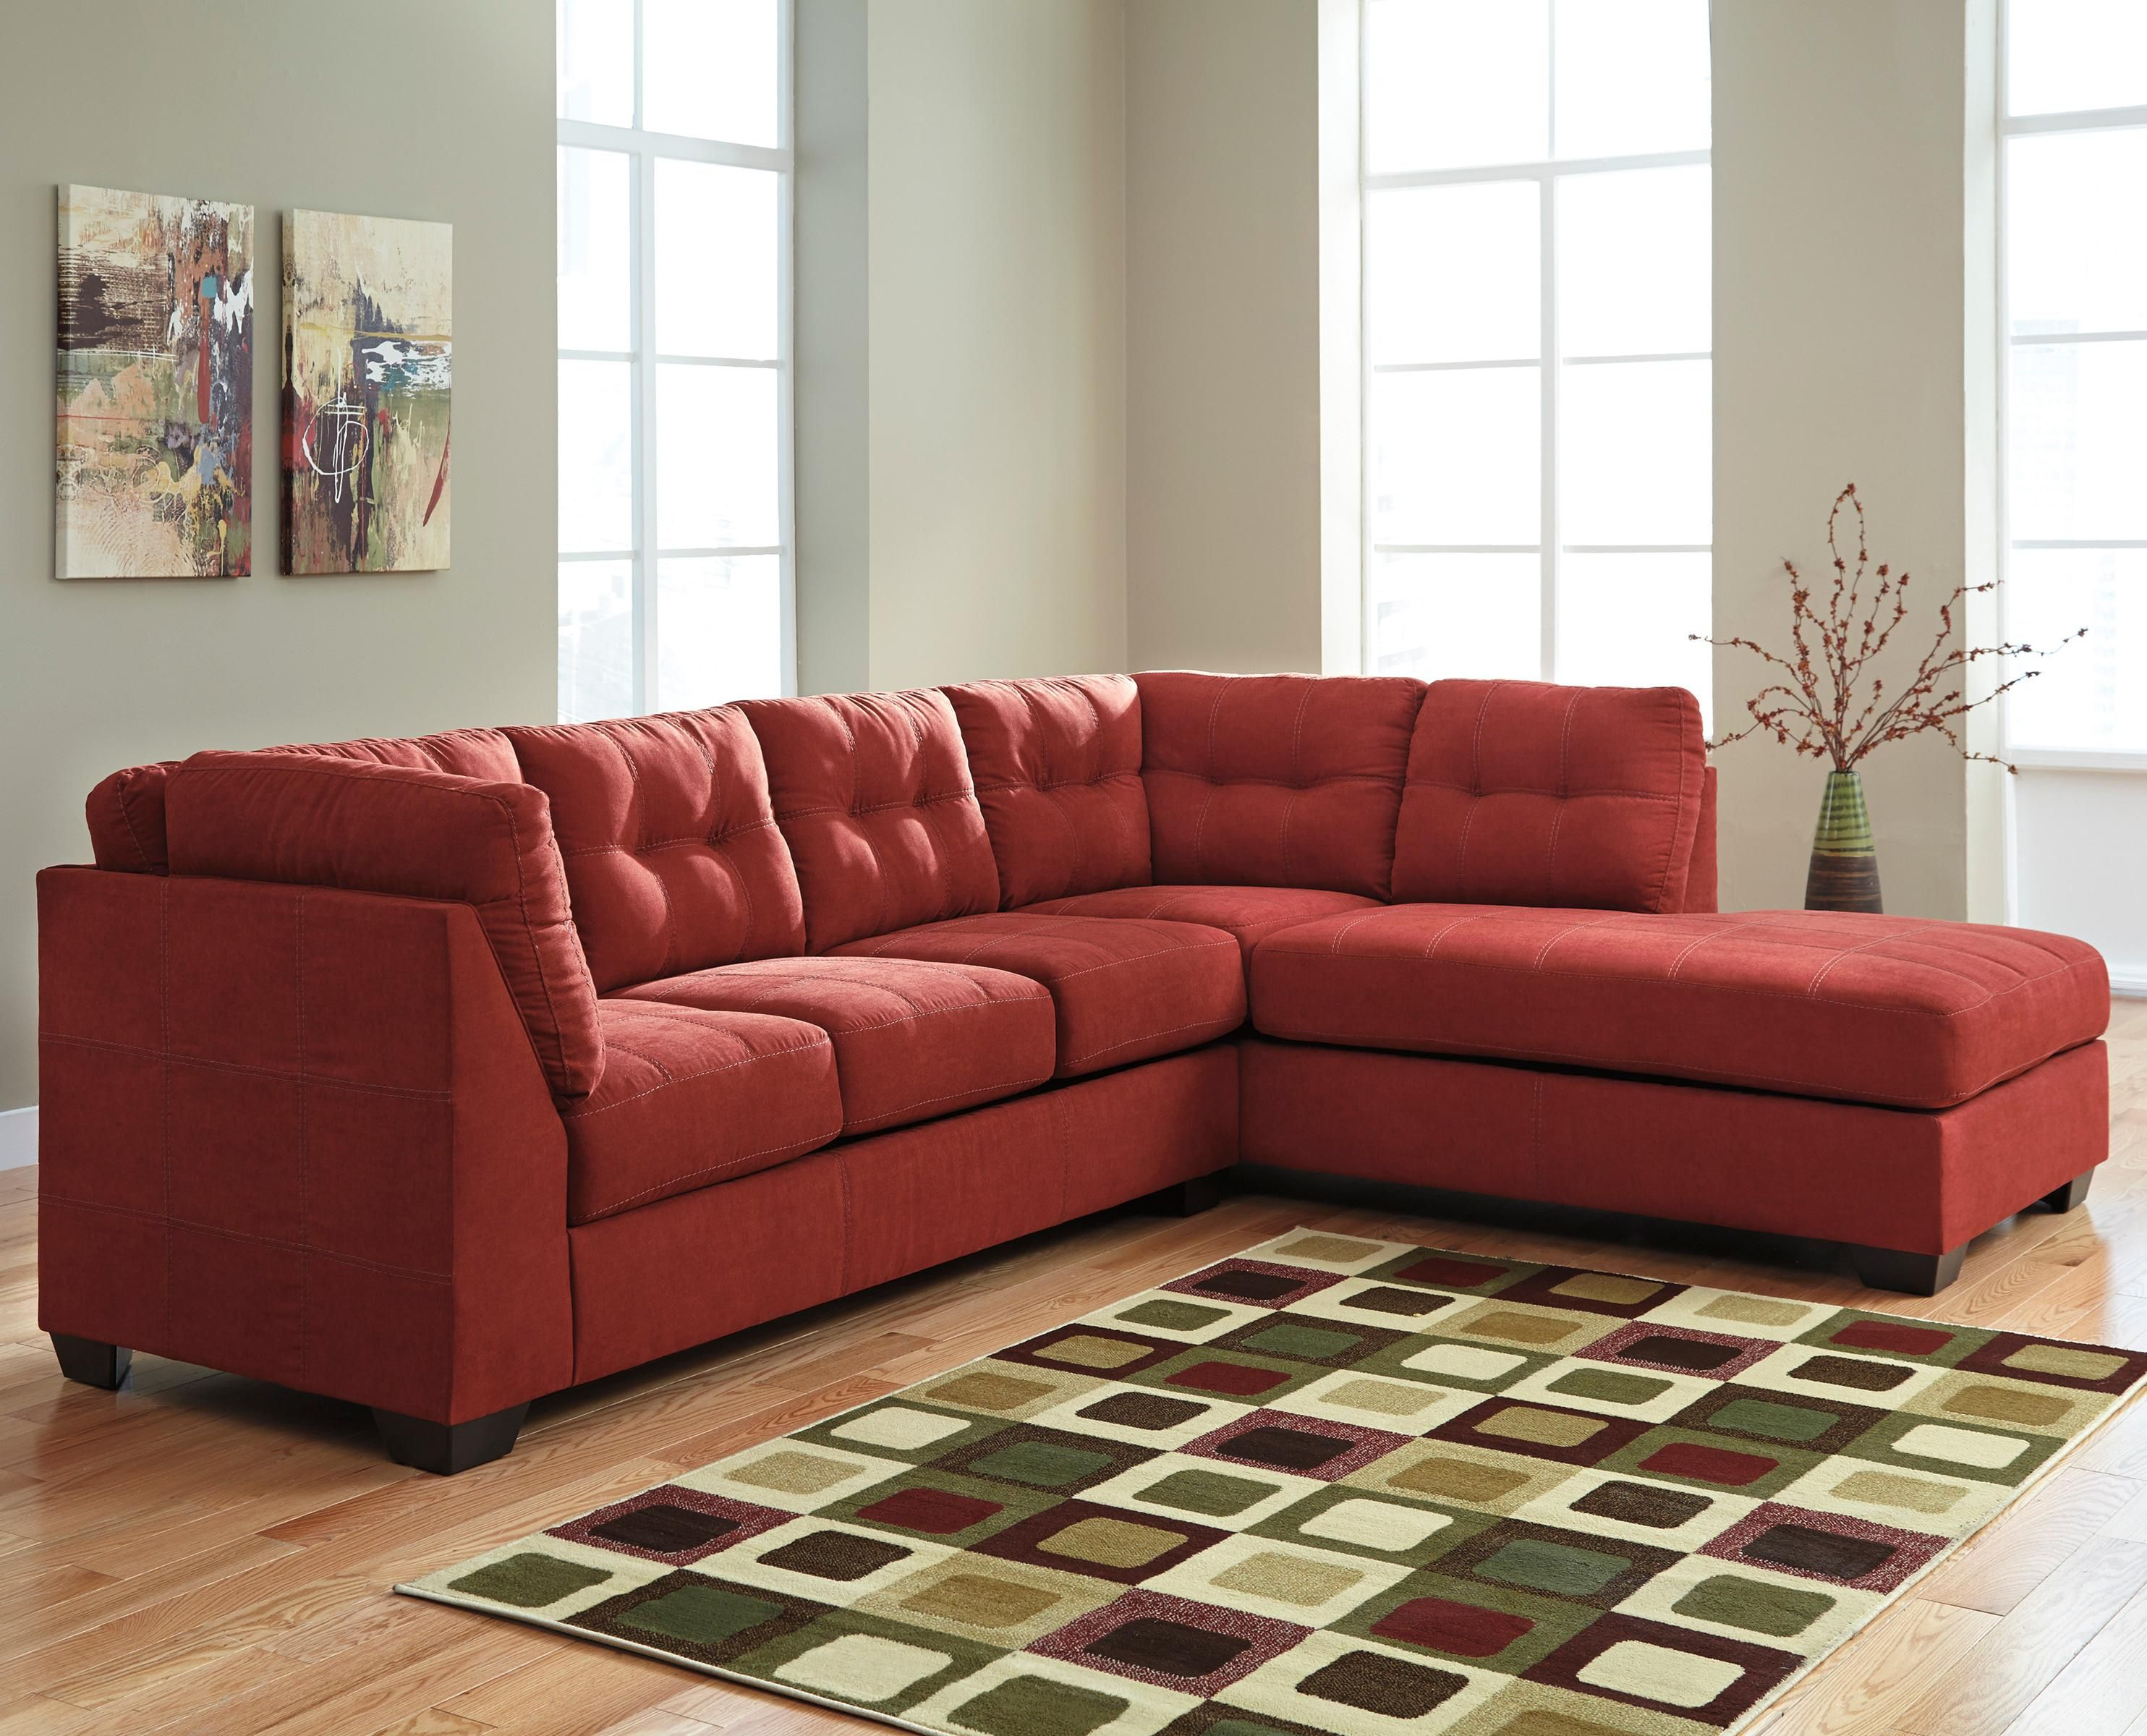 Mattress Stores In Longview Tx Maier - Sienna 2-Piece Sectional with Right Chaise by Benchcraft ...